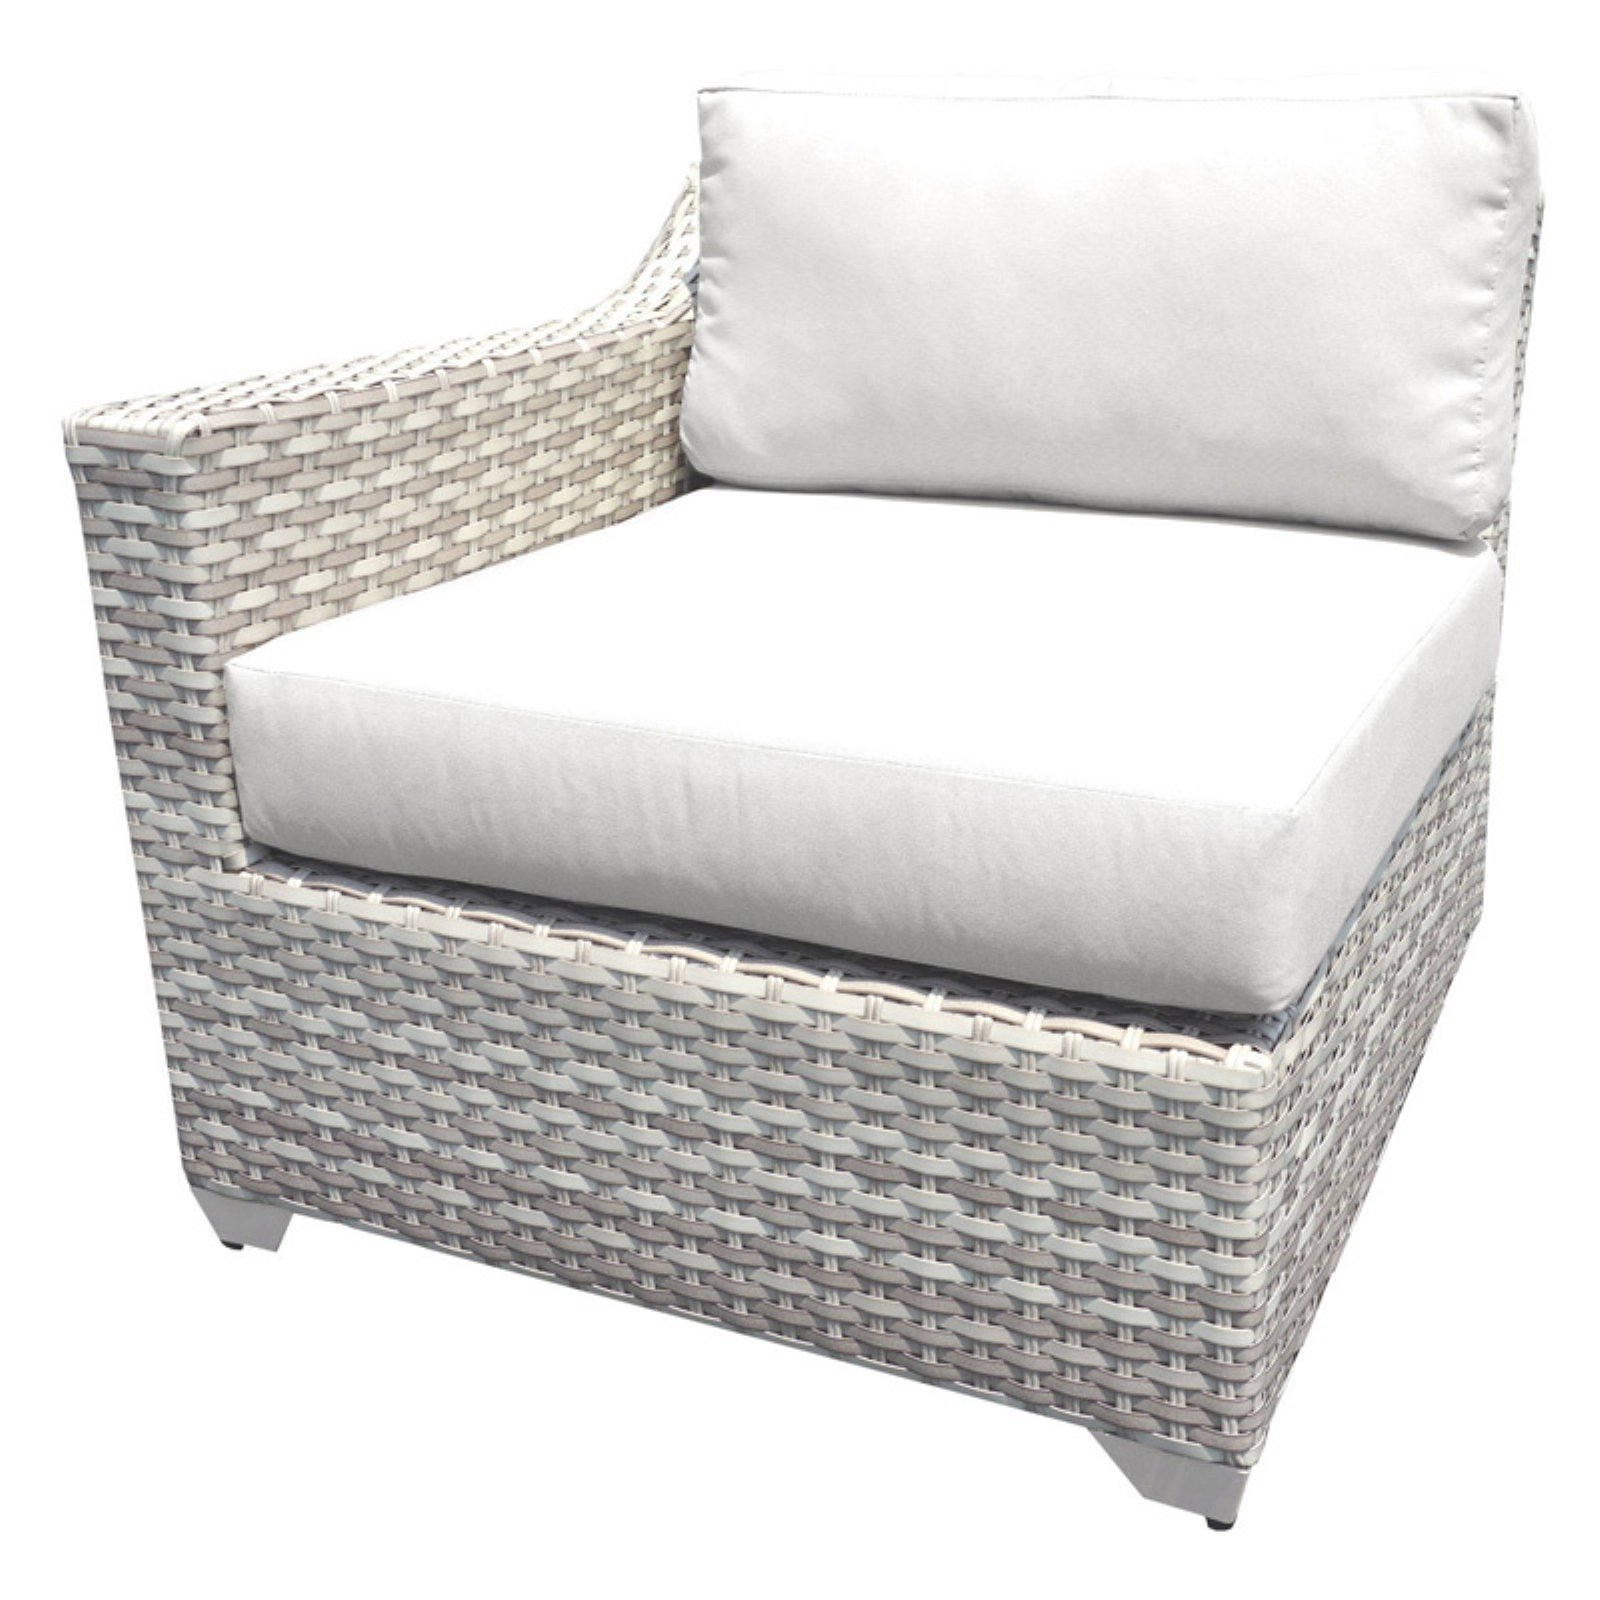 Rattan Sofa Occasion Tk Classics Outdoor Wicker Right Arm Sofa Sectional Piece